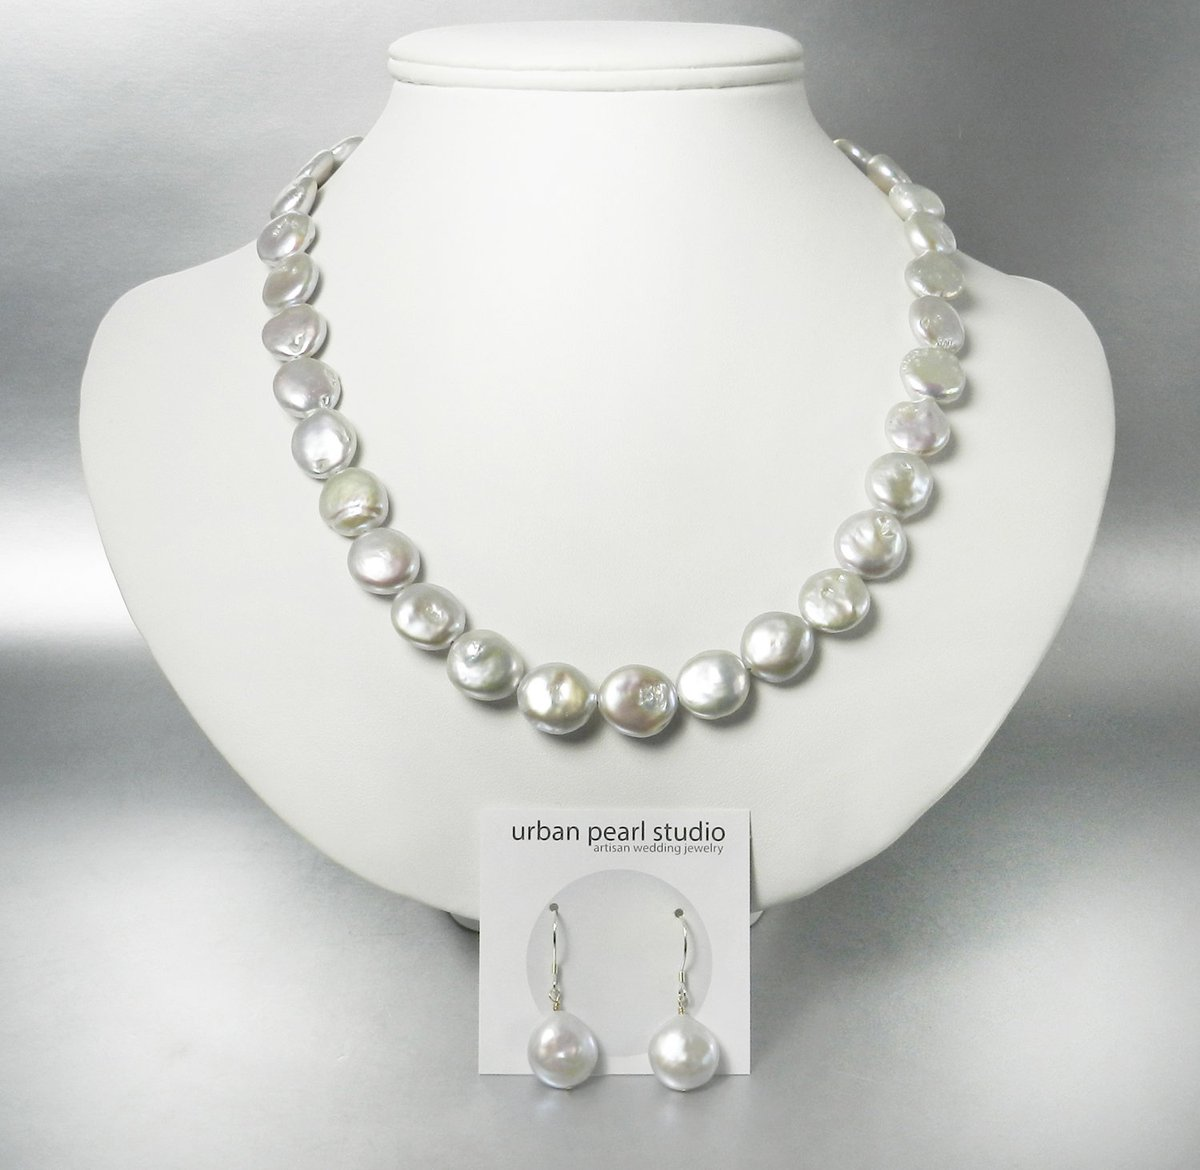 Silver Coin Pearl Necklace With Box Clasp    Gray Pearl Set Bridal Flat Pearl Necklace Coin Pearl Earrings https://t.co/j42ZNmFrJQ #handmadejewelry #etsy #pearlnecklace #giftsforher #lovejewelry #handmade https://t.co/7c7Lzymr2v